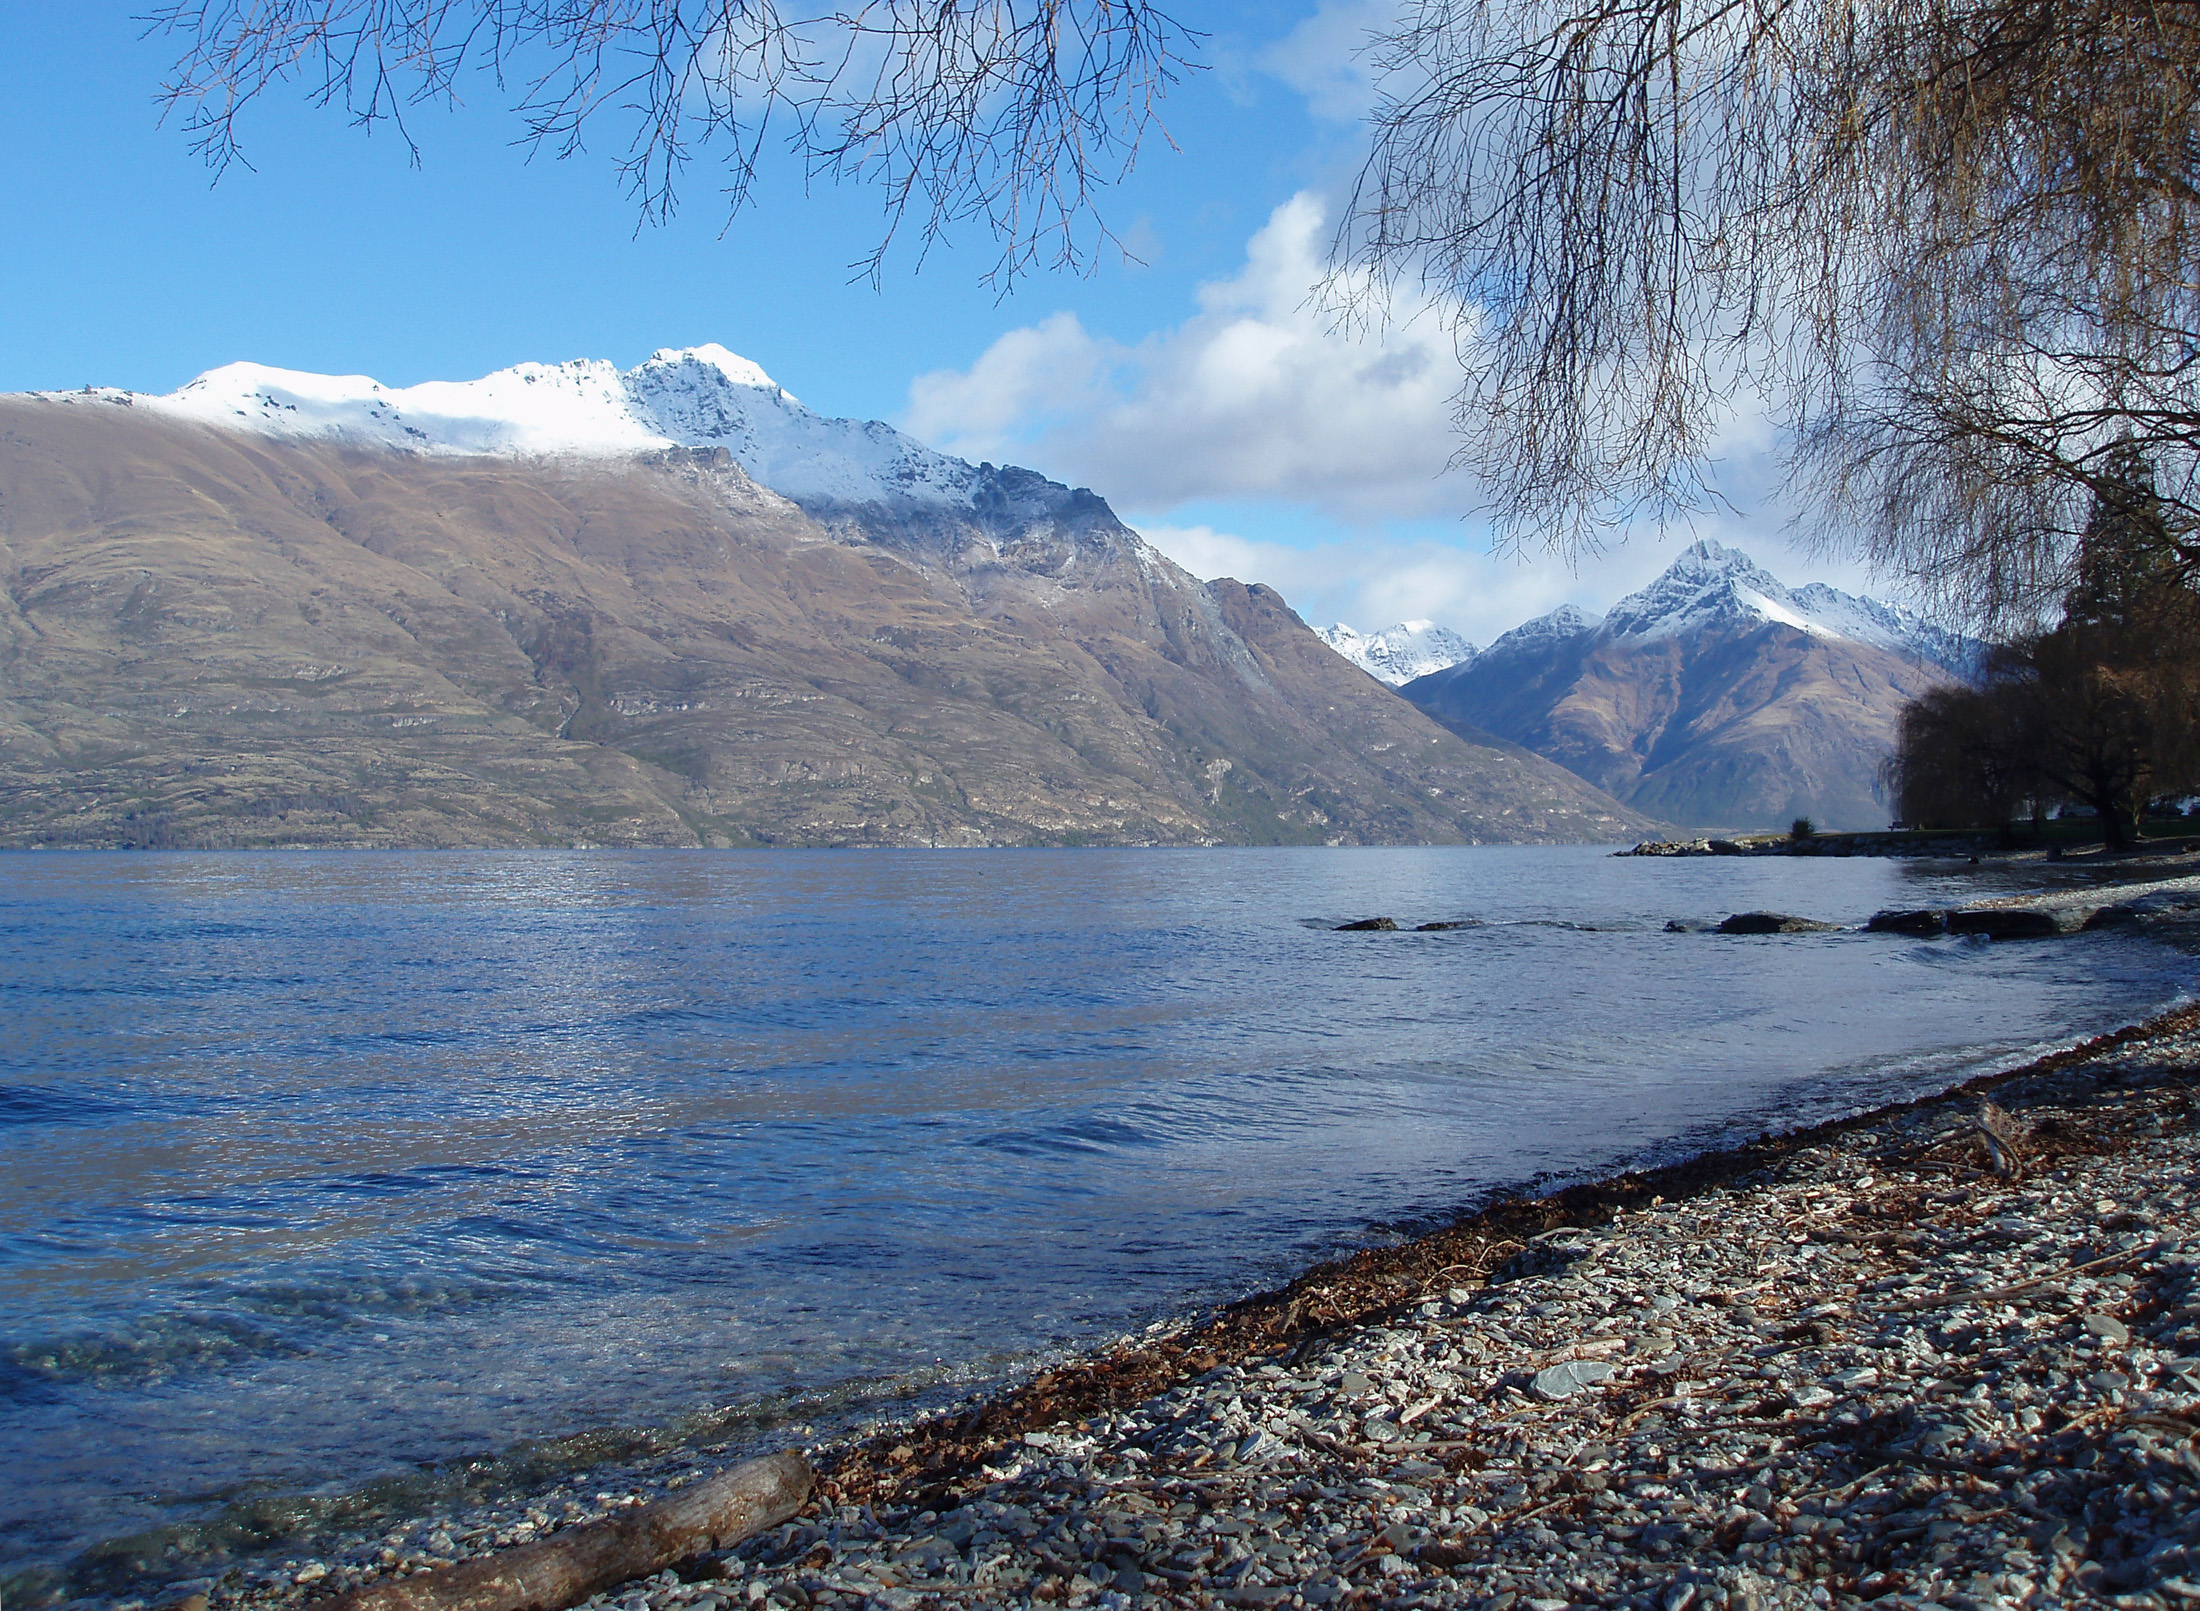 serene waters lake seen from the shores of lake wakatipu in queenstown